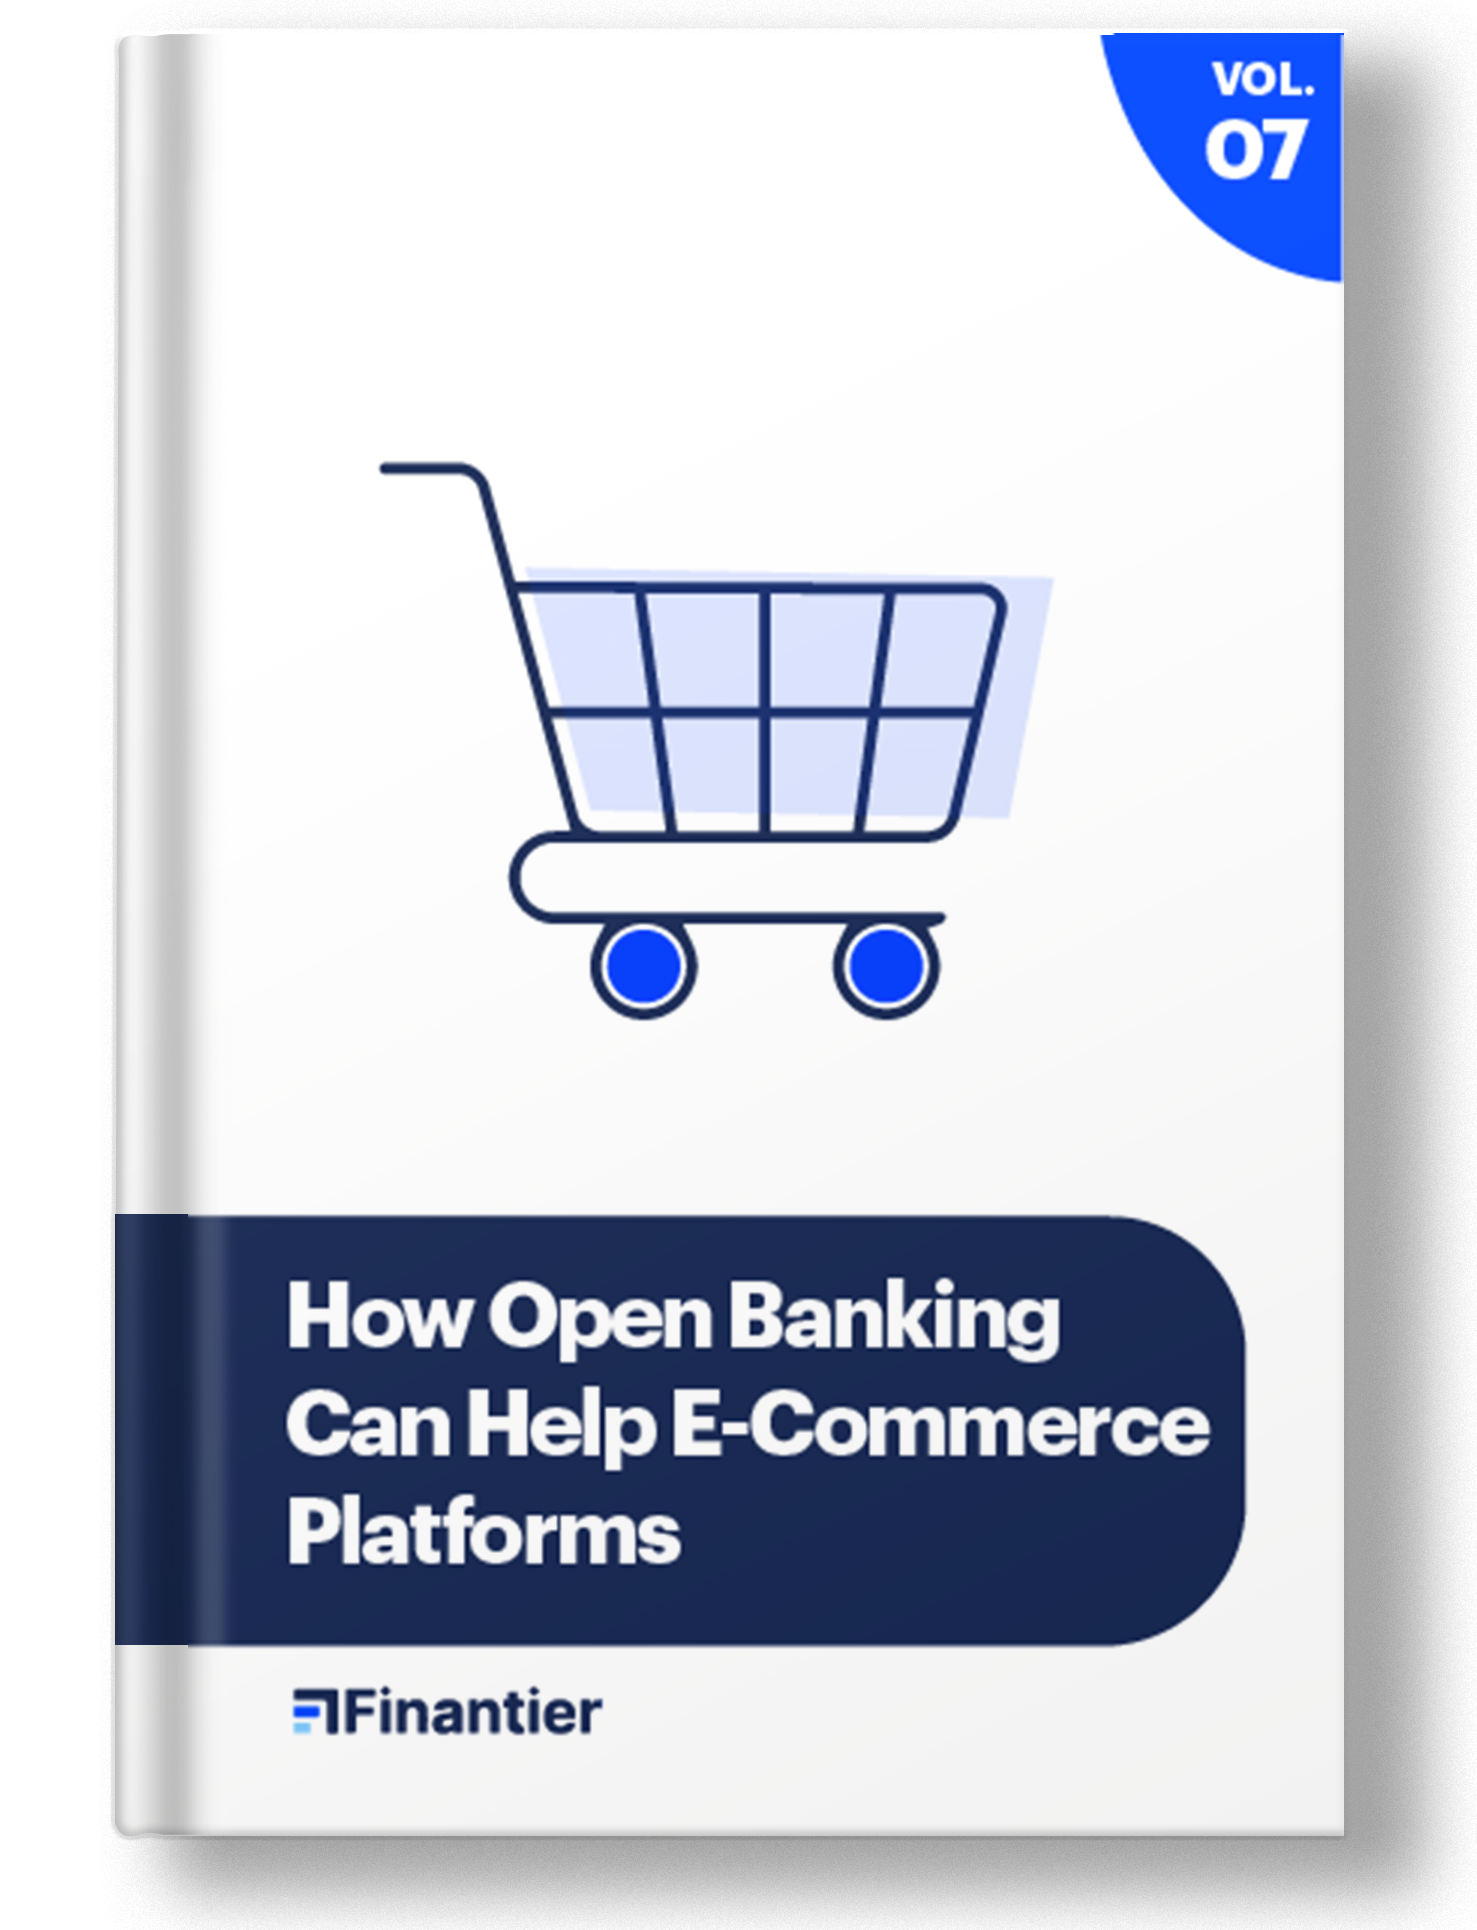 How Open Banking Can Help E-Commerce Platforms